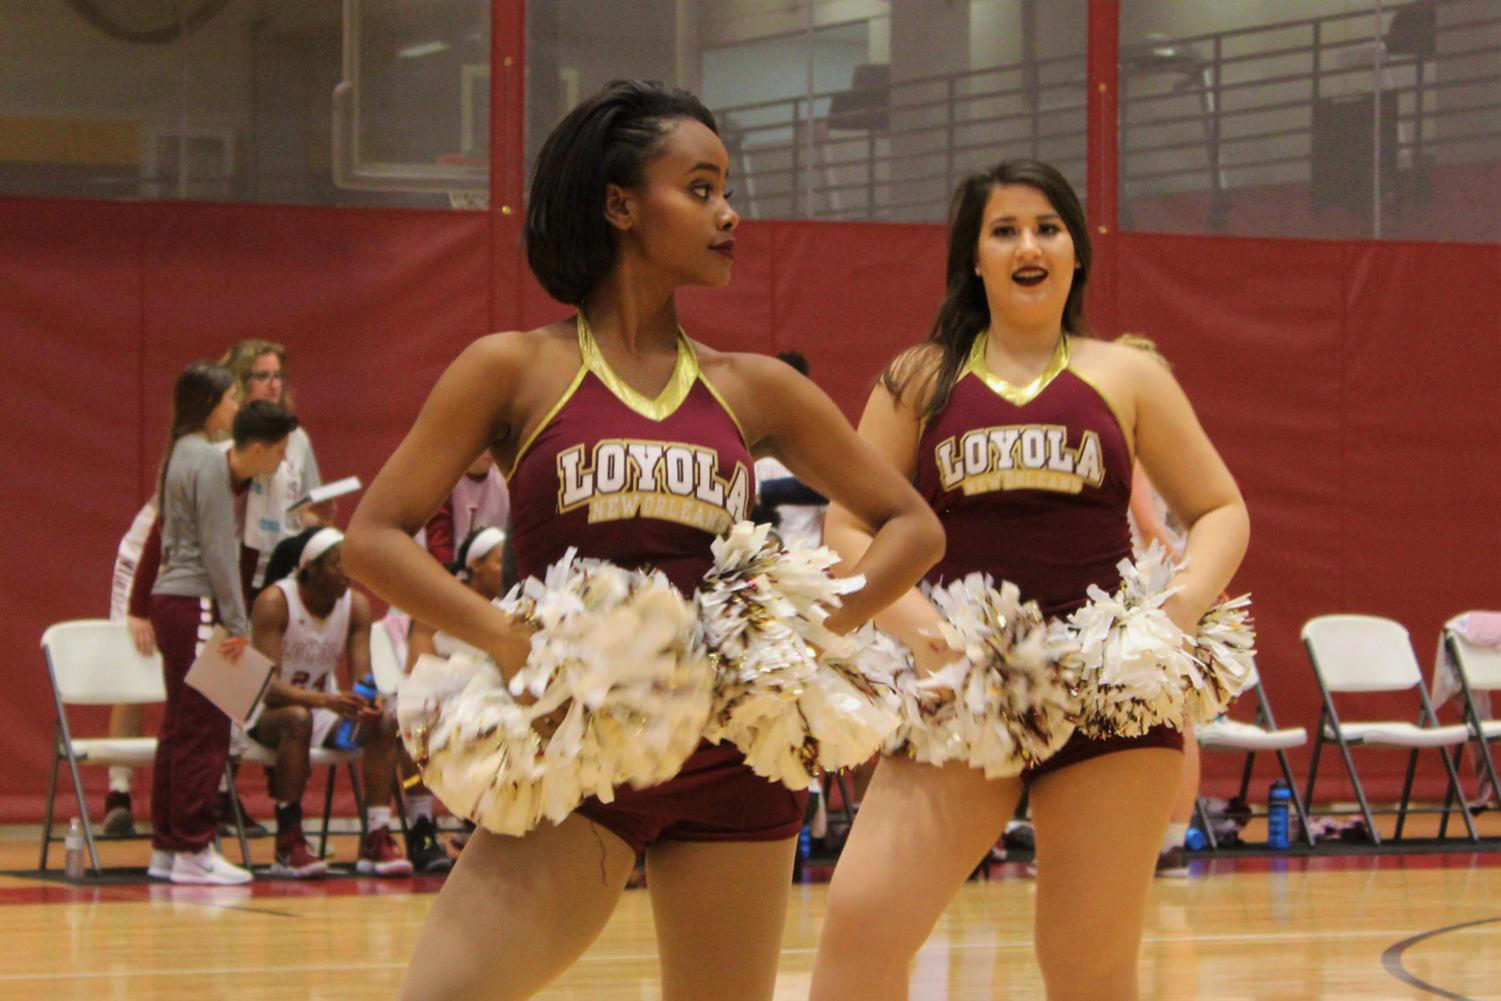 Cereyna Bougouneau, theater arts junior, performing during a halftime show during a women's basketball game at The Den Feb. 8 2018. Bougouneau brings her Caribbean ties to Loyola's competitive dance team. Photo credit: Andres Fuentes